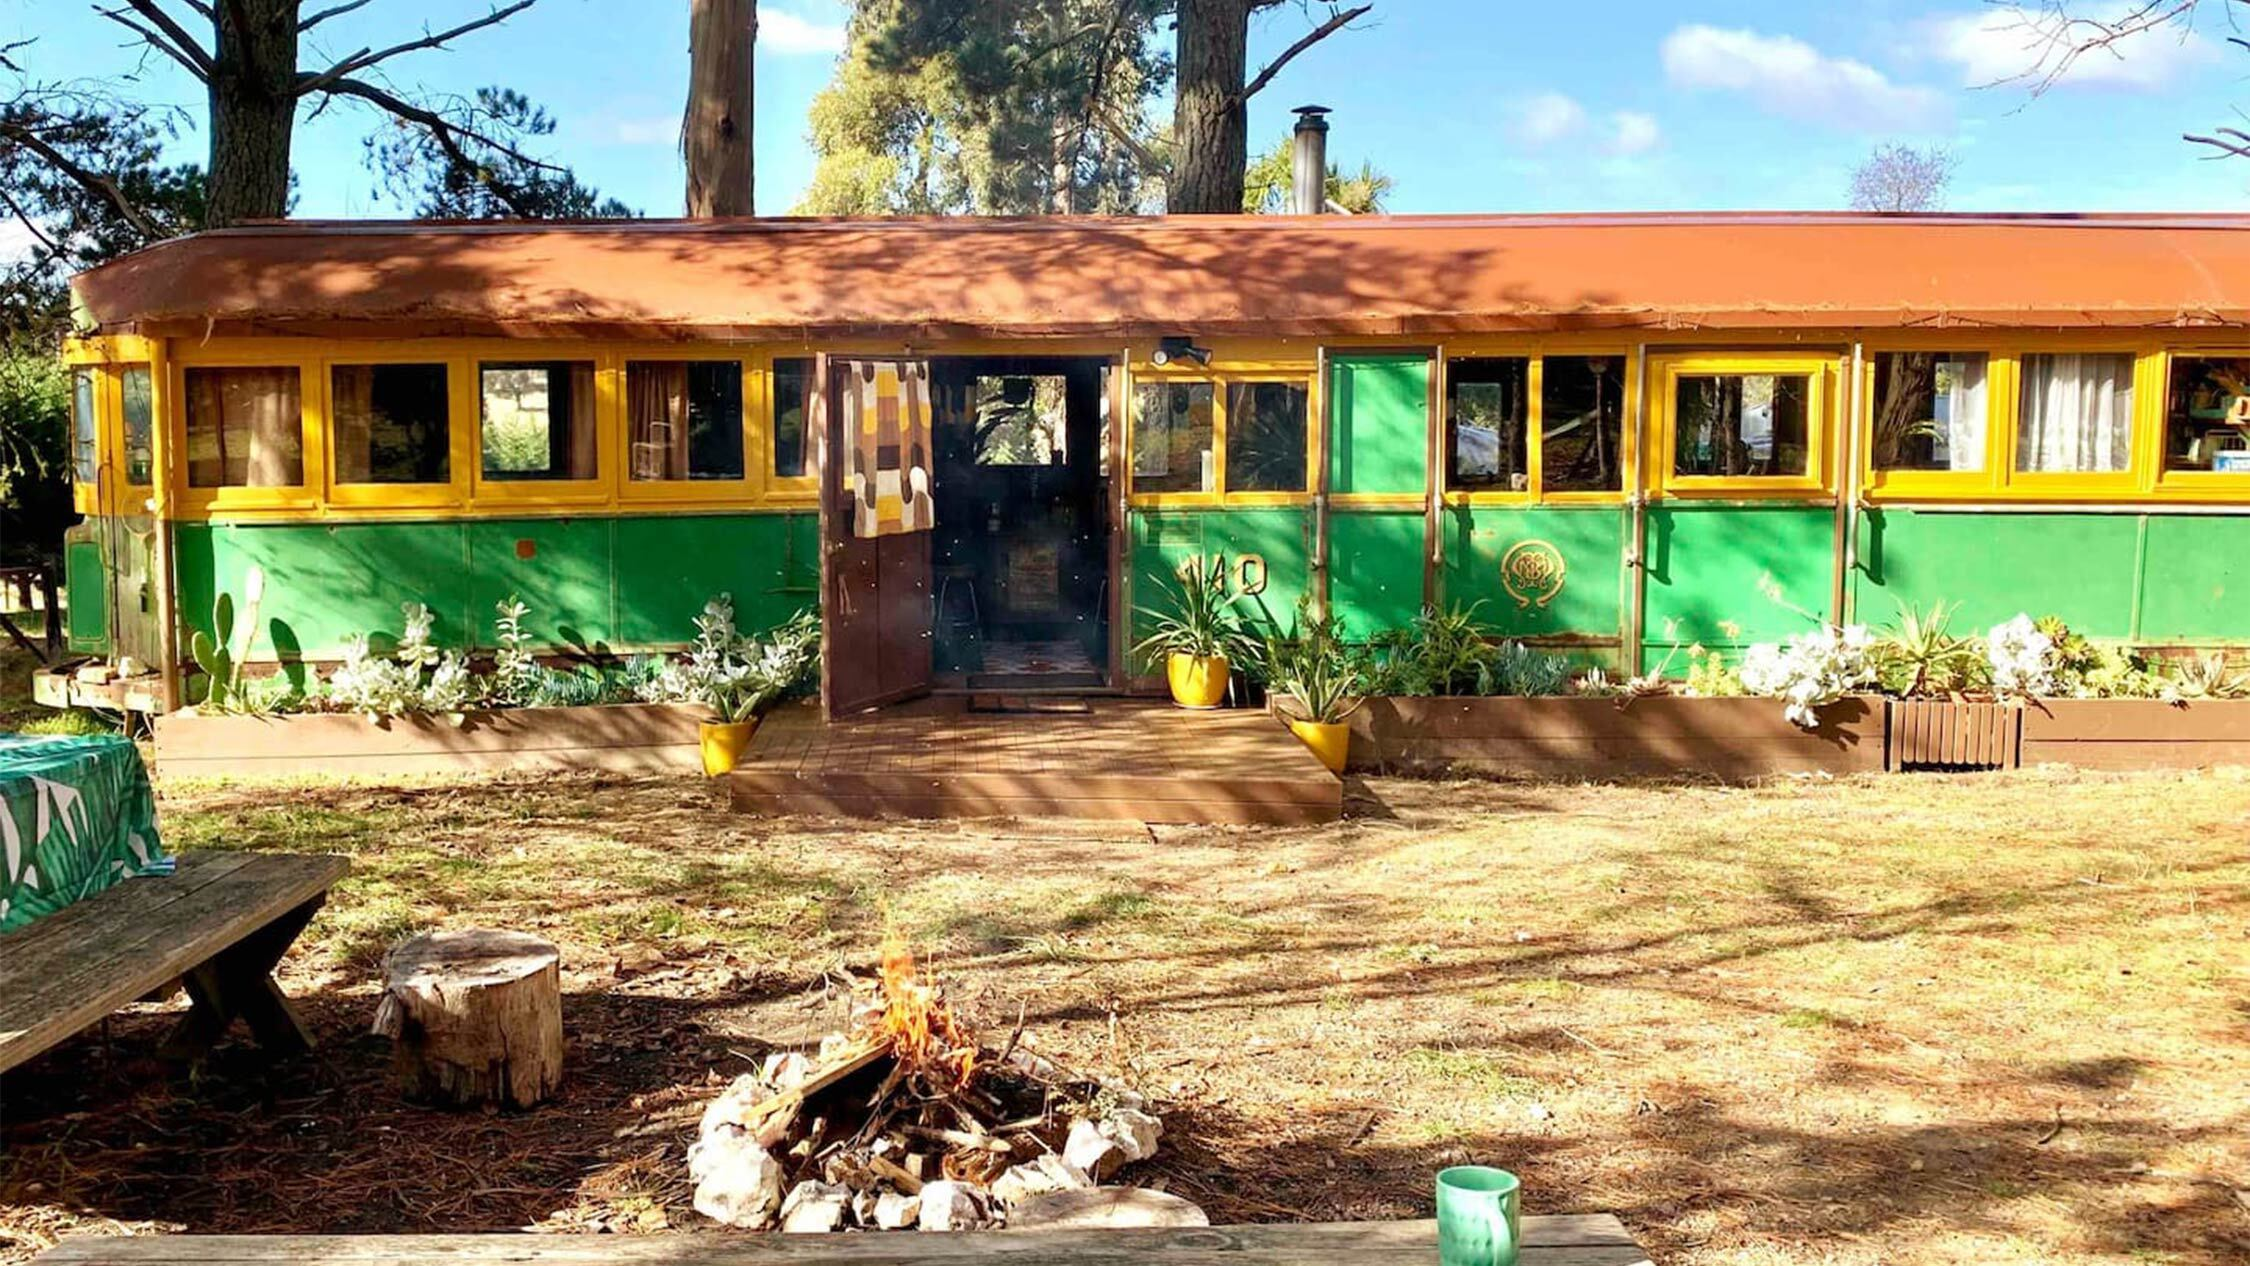 You can now stay in a vintage 1920s tram in country Victoria